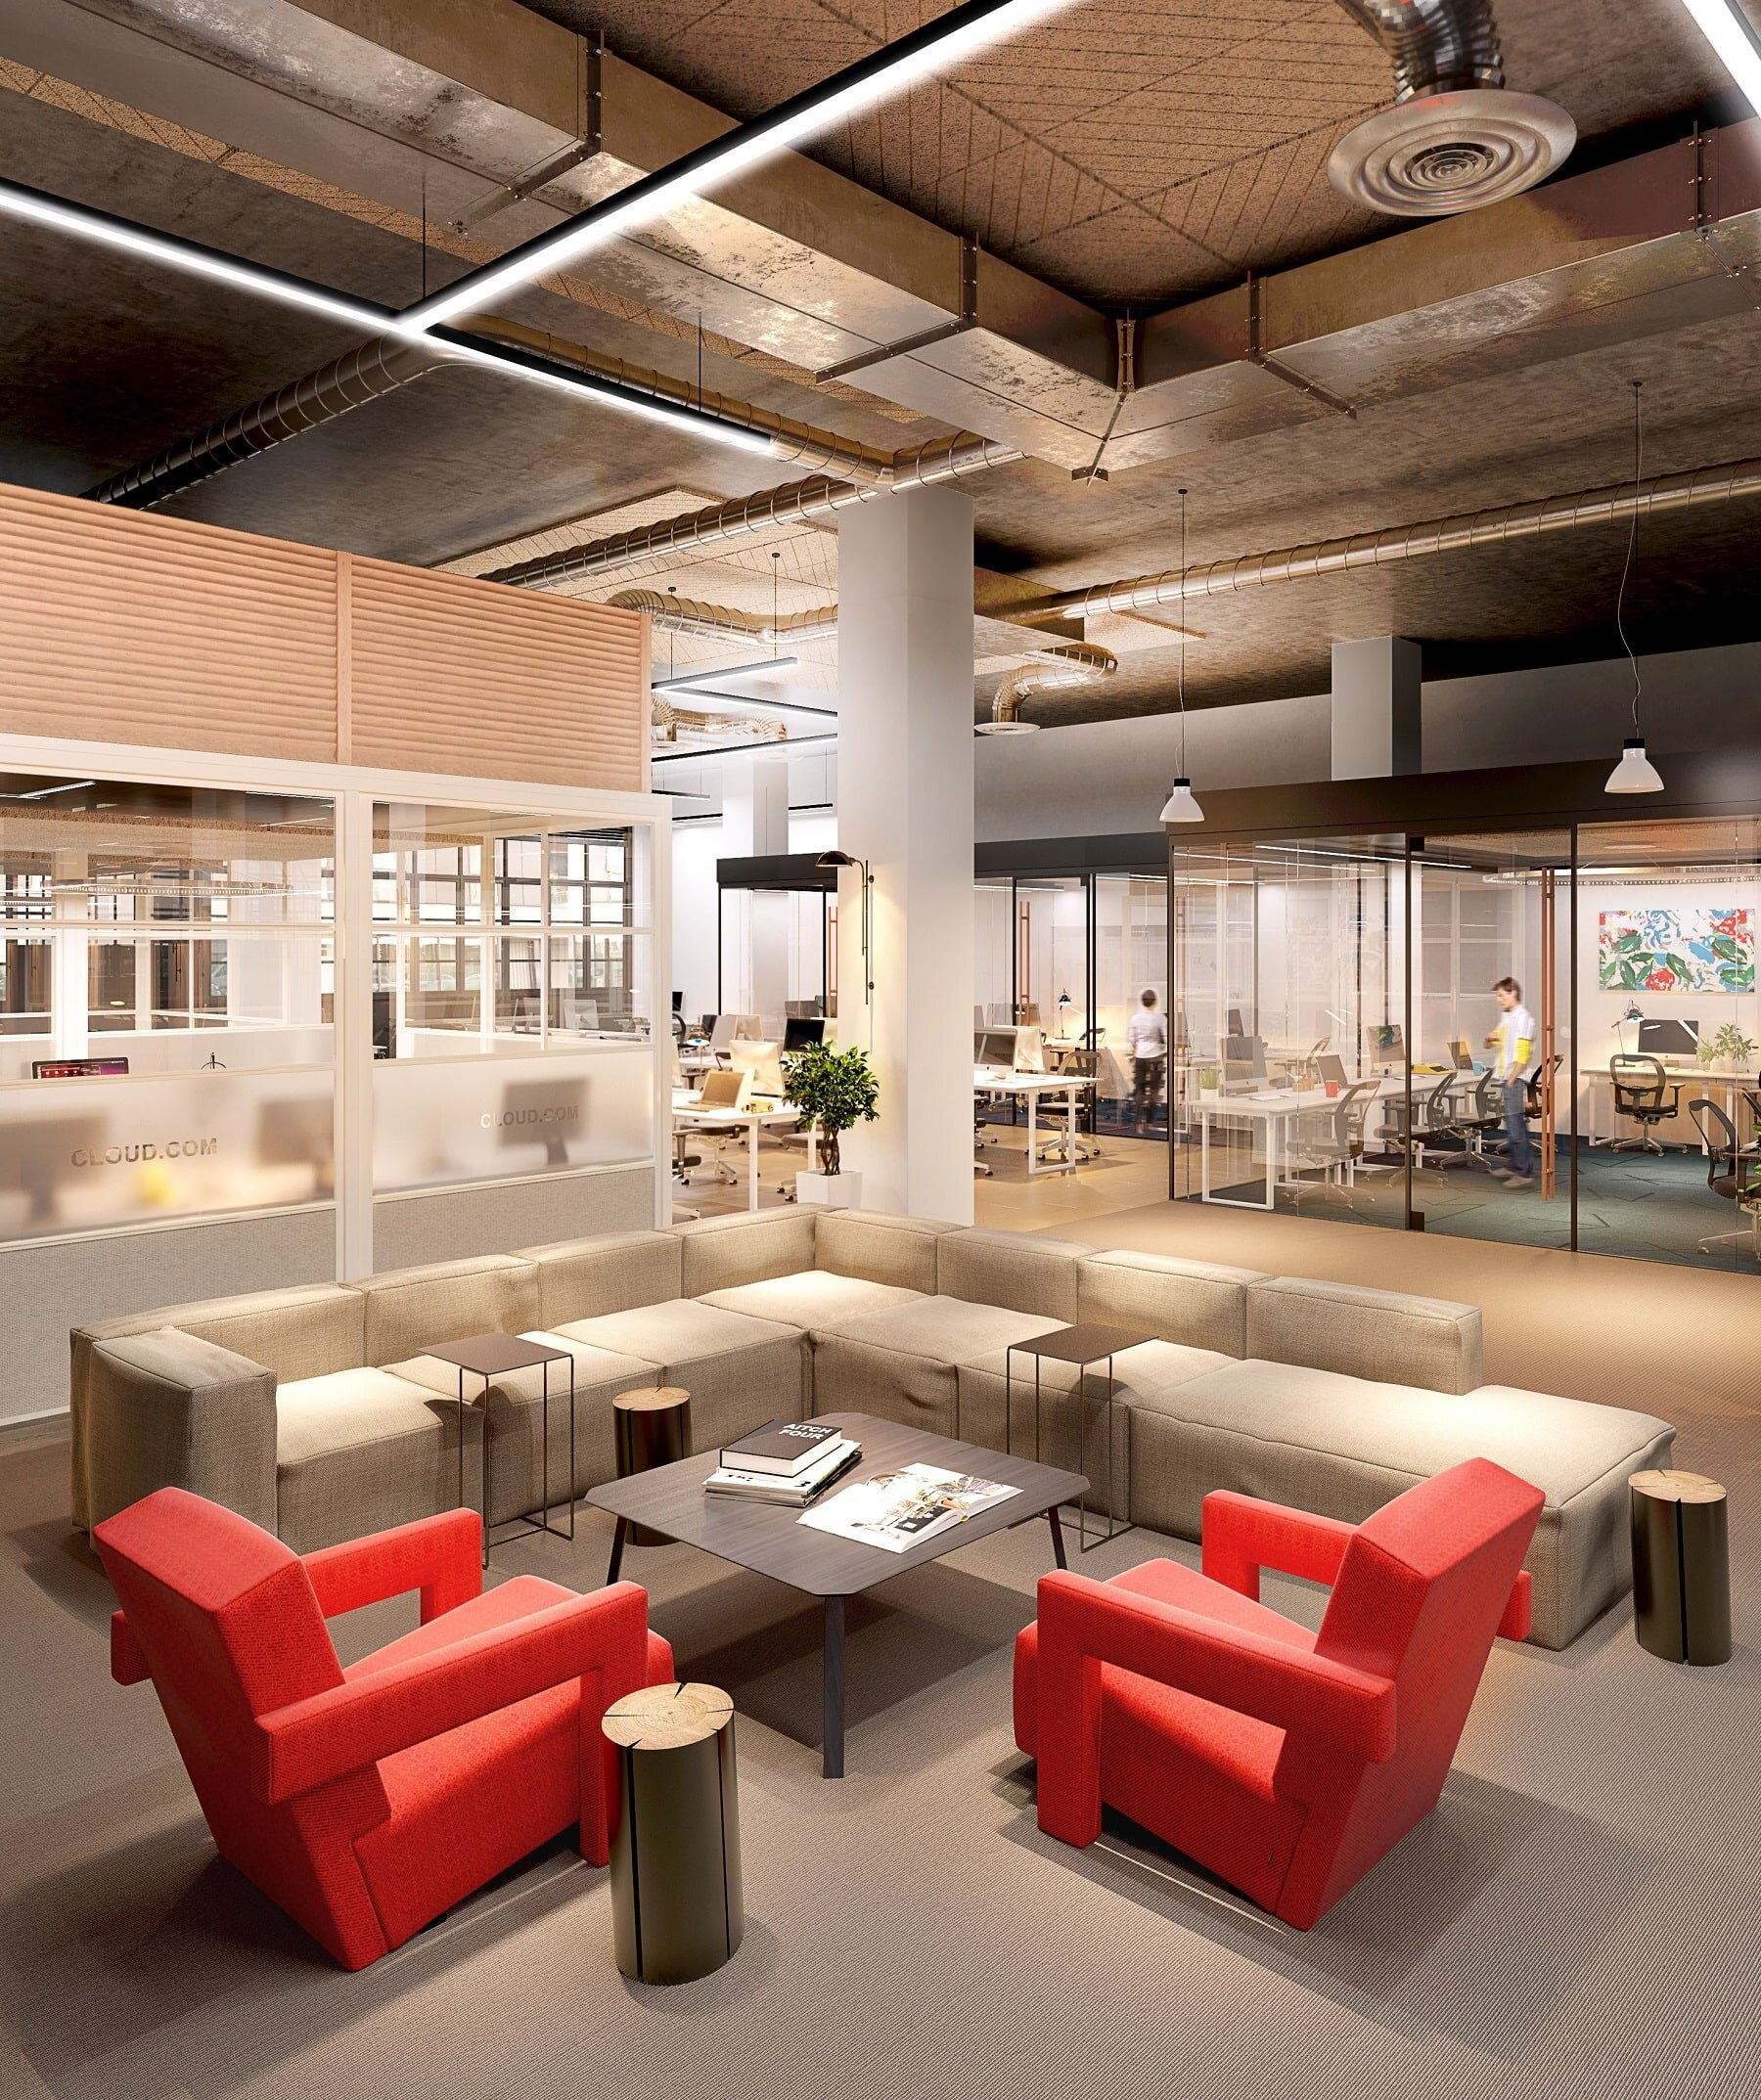 cgi-for-coworking-spaces-open-office-lounge-min.jpg